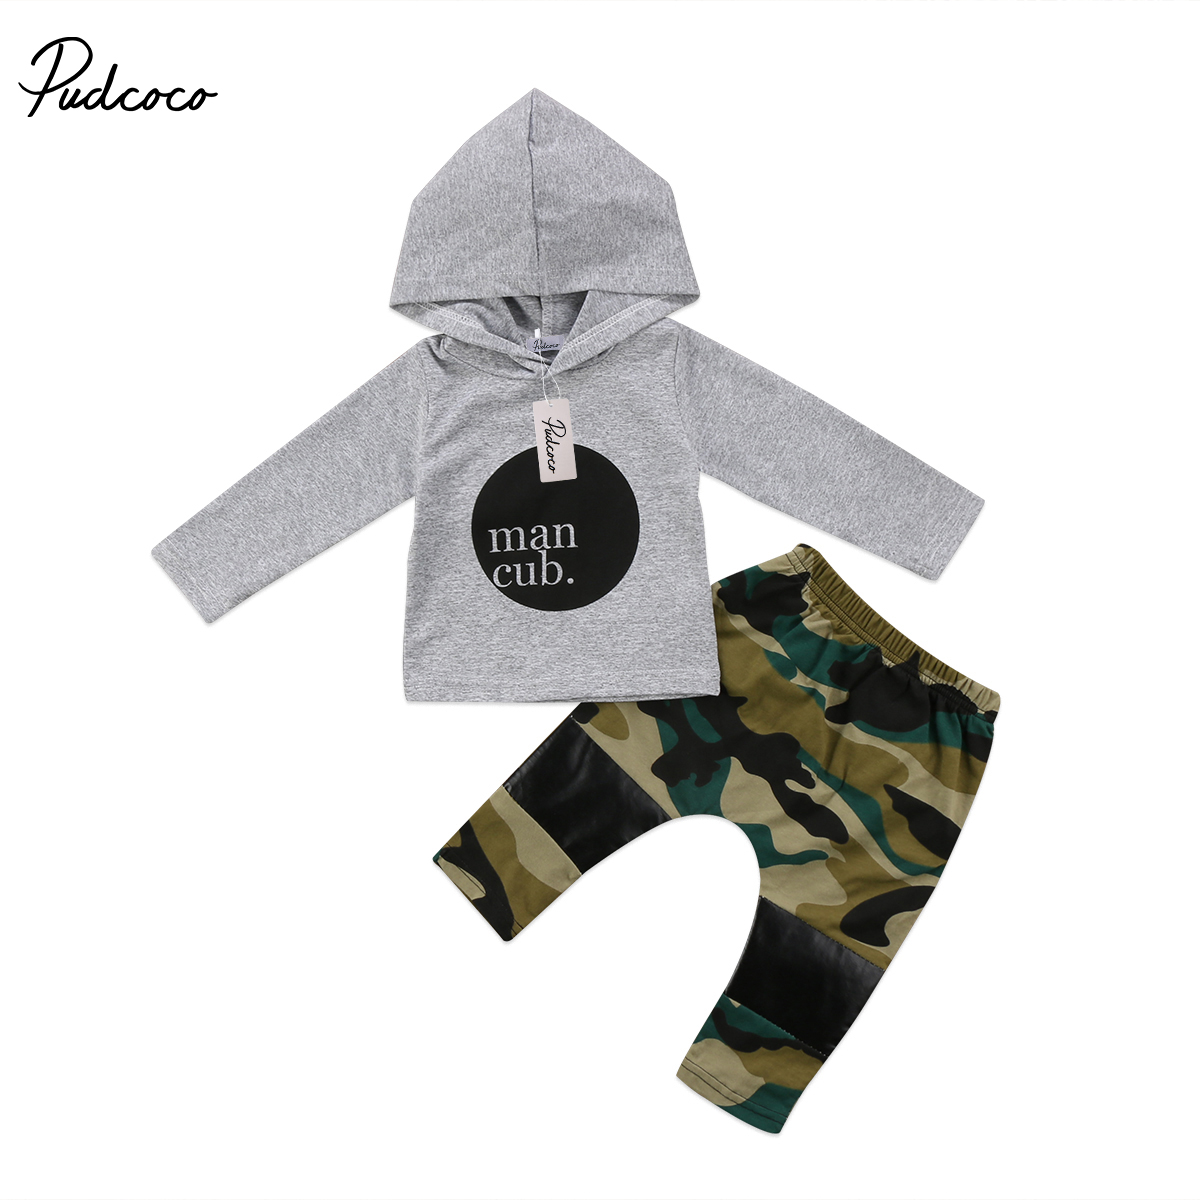 Pudcoco 2PCS Toddler Newborn Baby Kids Boy Camouflage Hooded Clothing Sets Sweatshirt Tops+Pants 2Pcs Outfits Clothes newborn kids baby boy summer clothes set t shirt tops pants outfits boys sets 2pcs 0 3y camouflage